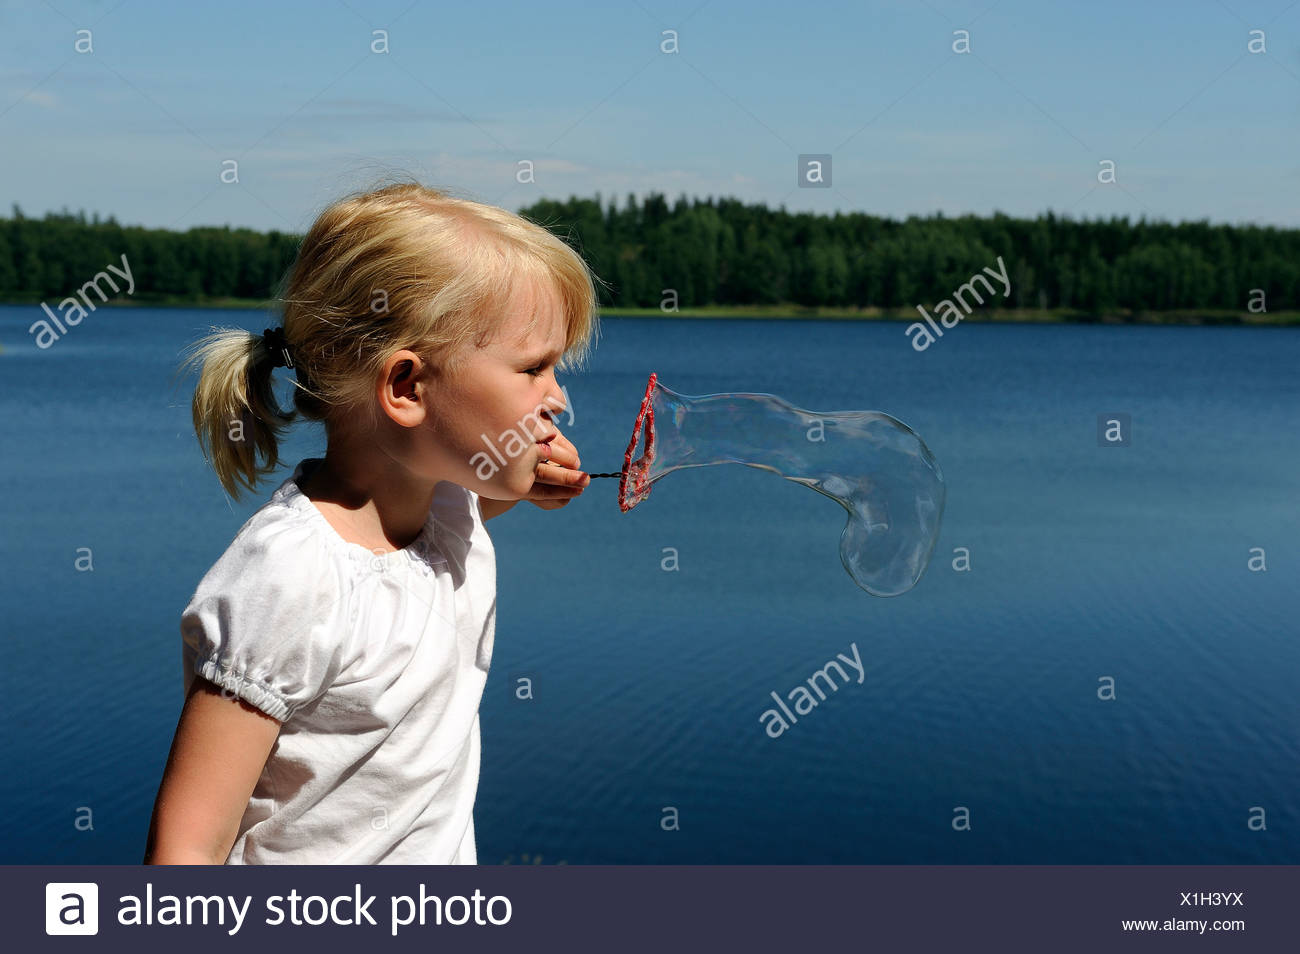 Side view of a girl blowing soap bubbles against peaceful lake - Stock Image